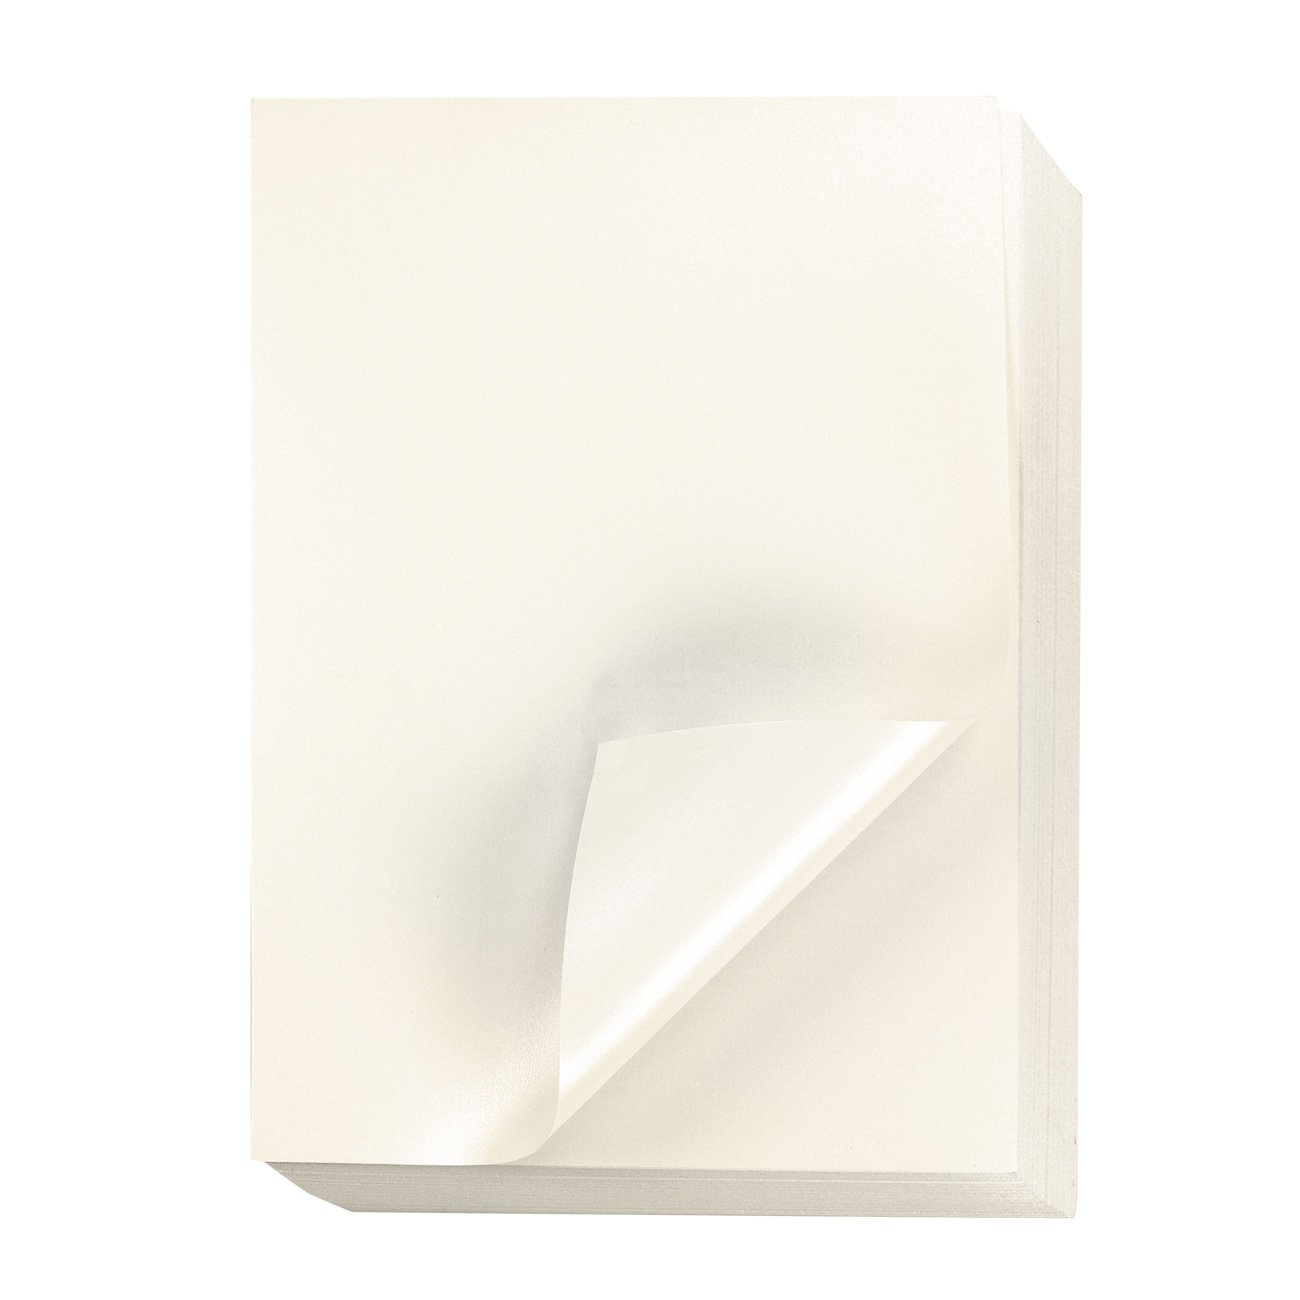 Shimmer Paper – 96-Pack Ivory Metallic Cardstock Paper, Double Sided, Laser Printer Friendly - Perfect for Weddings, Baby Showers, Birthdays, Craft Use, Letter Size Sheets, 8.7 x 0.03 x 11 Inches by Best Paper Greetings